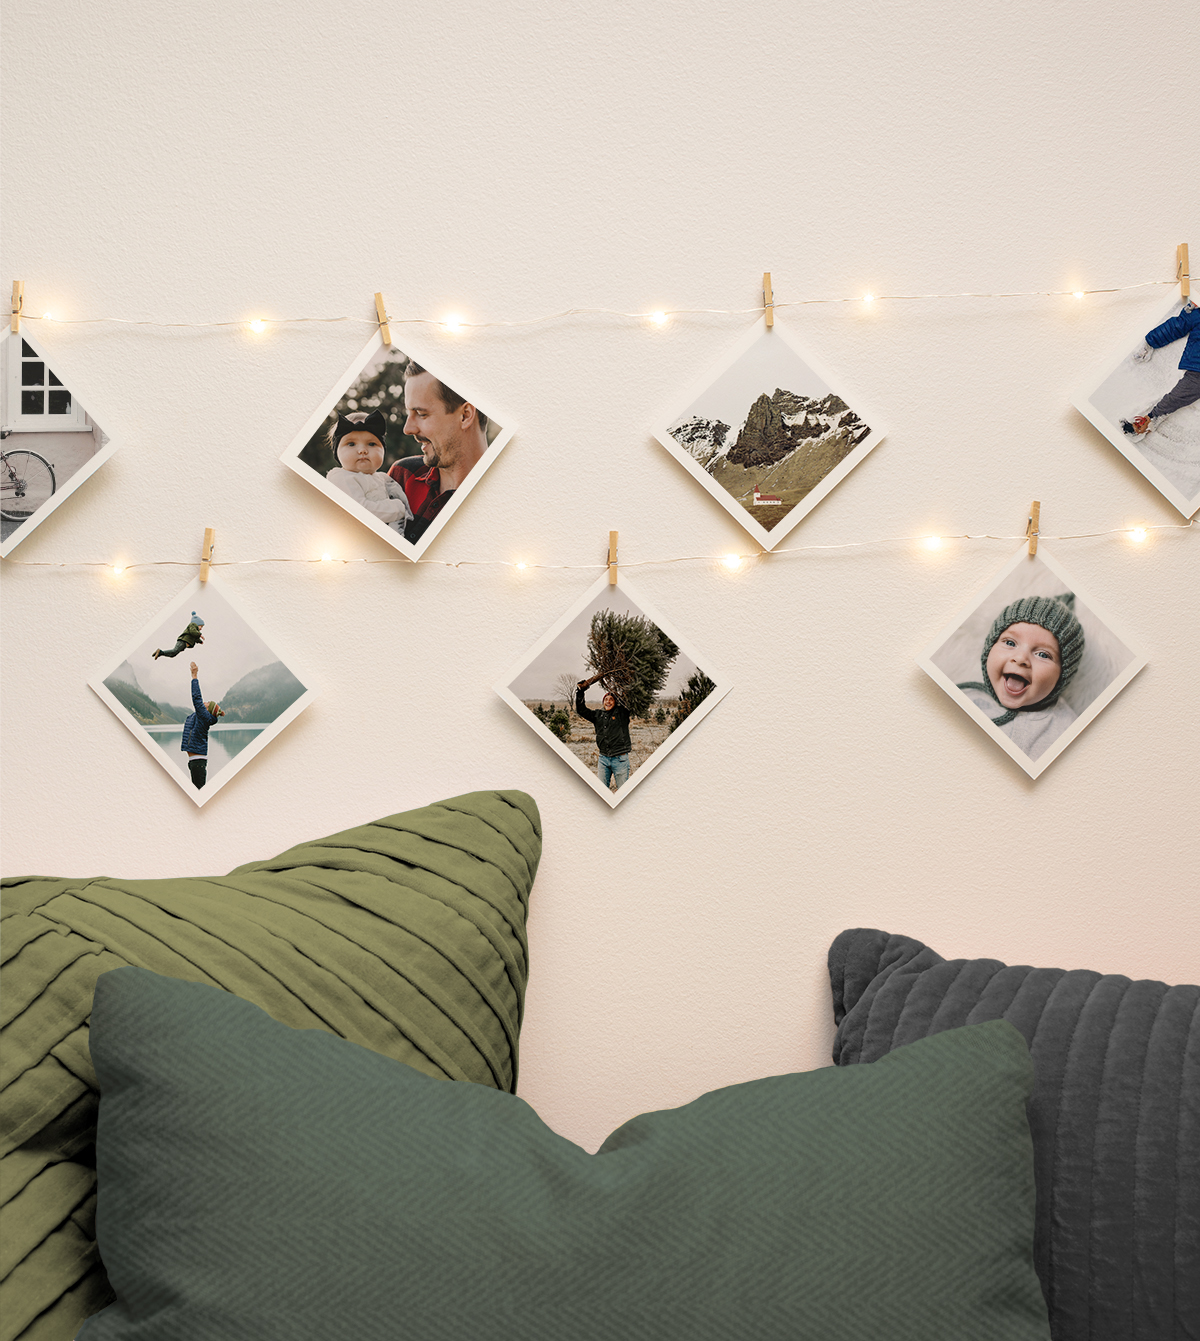 Family photos strung up on the wall using holiday lights